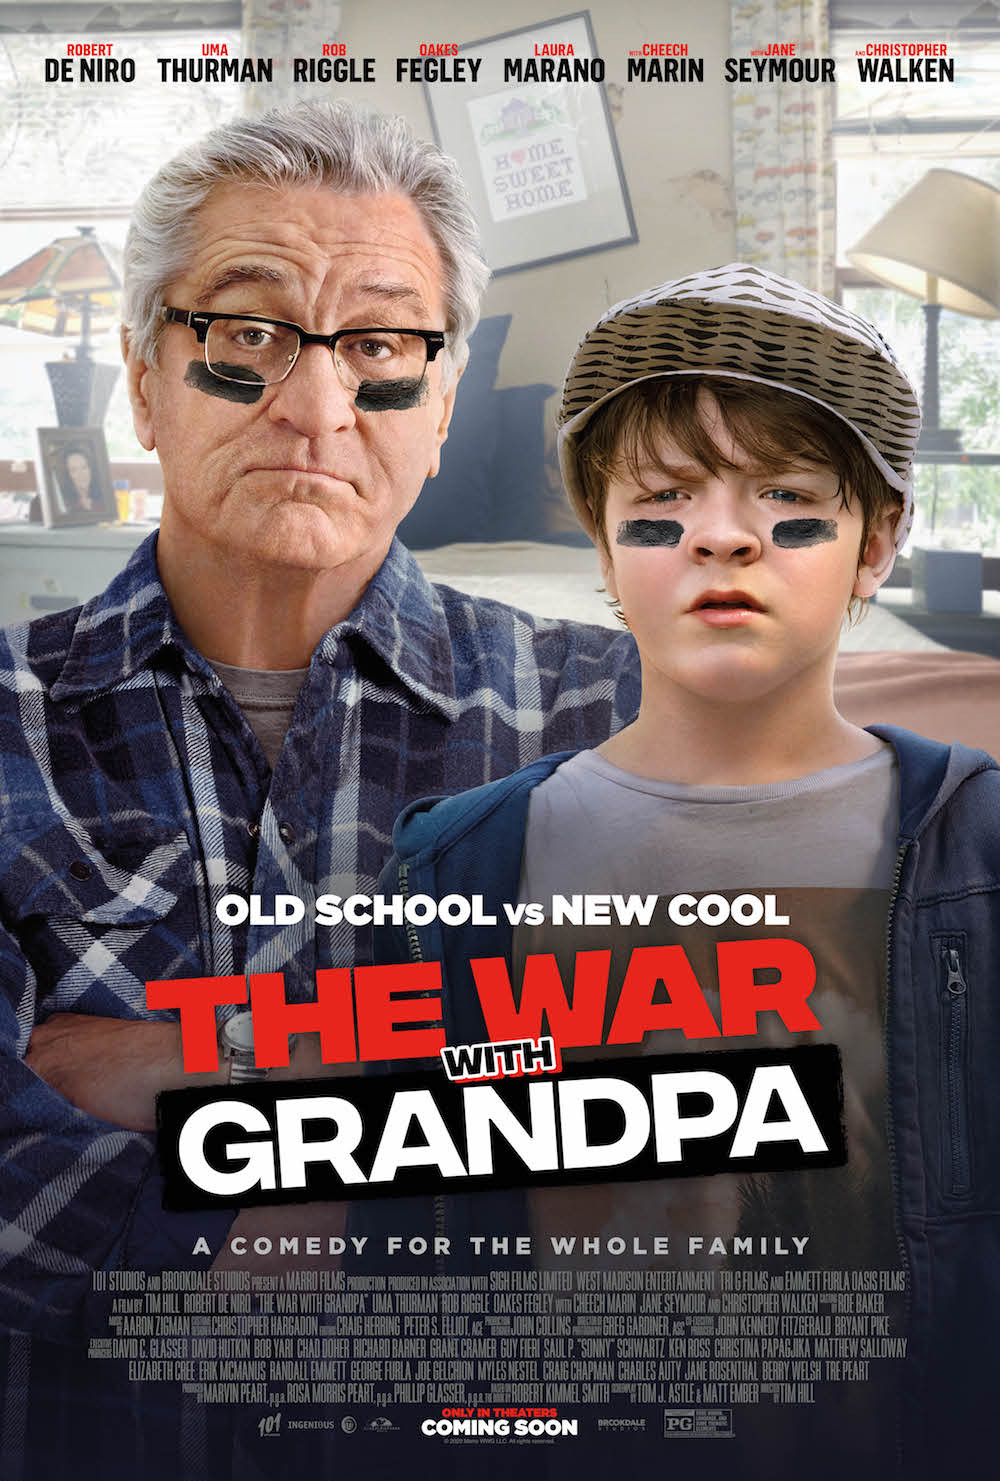 The War with Grandpa hd on soap2day